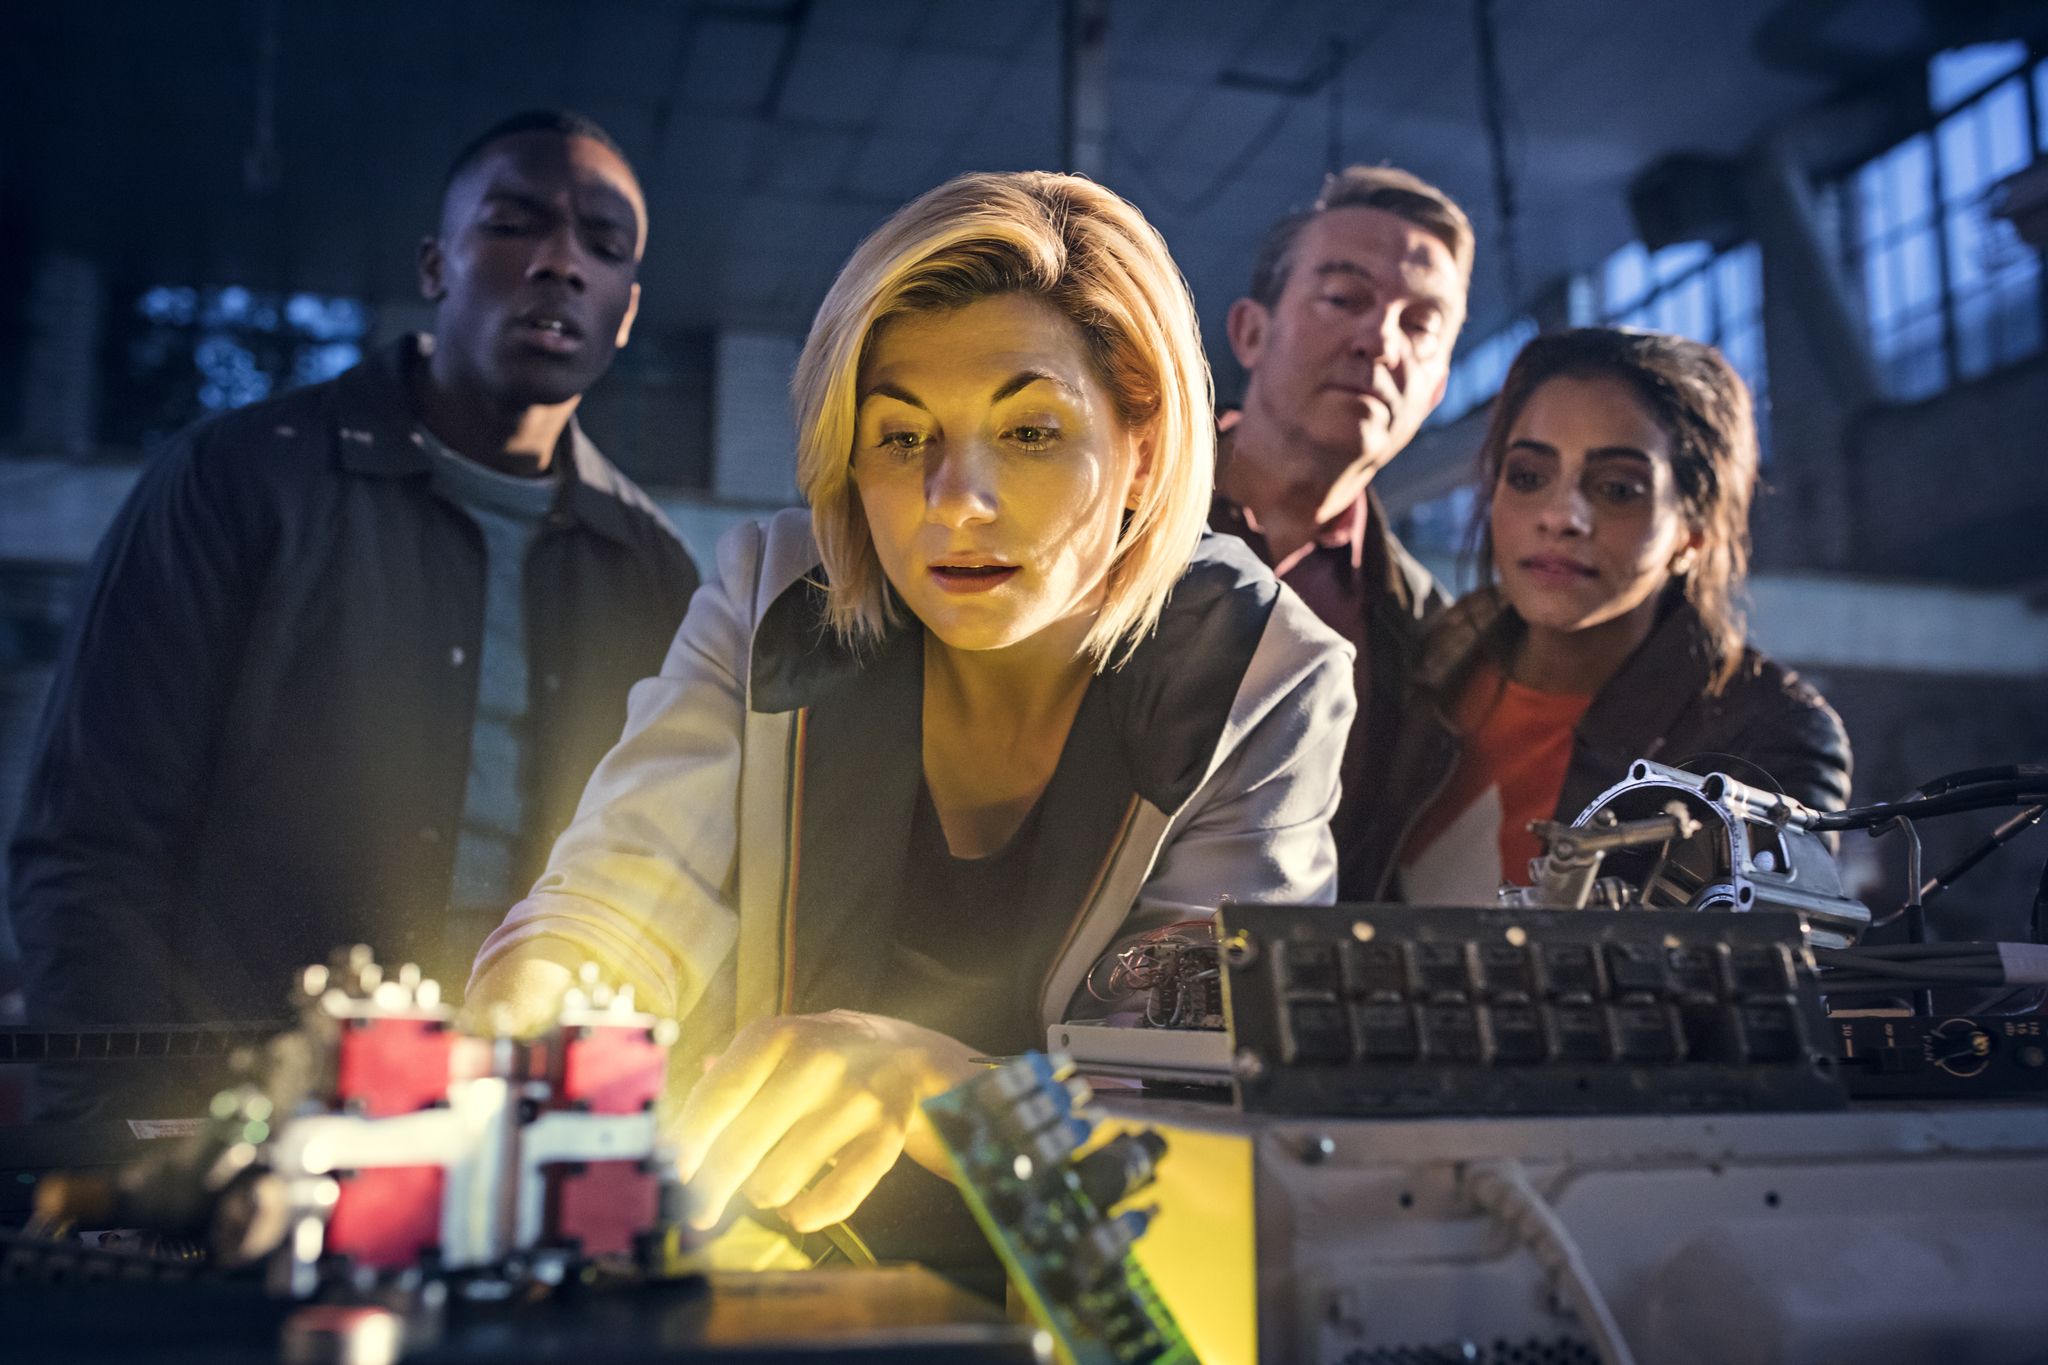 Bradley Walsh, Jodie Whittaker, Tosin Cole, and Mandip Gill in Doctor Who (2005)